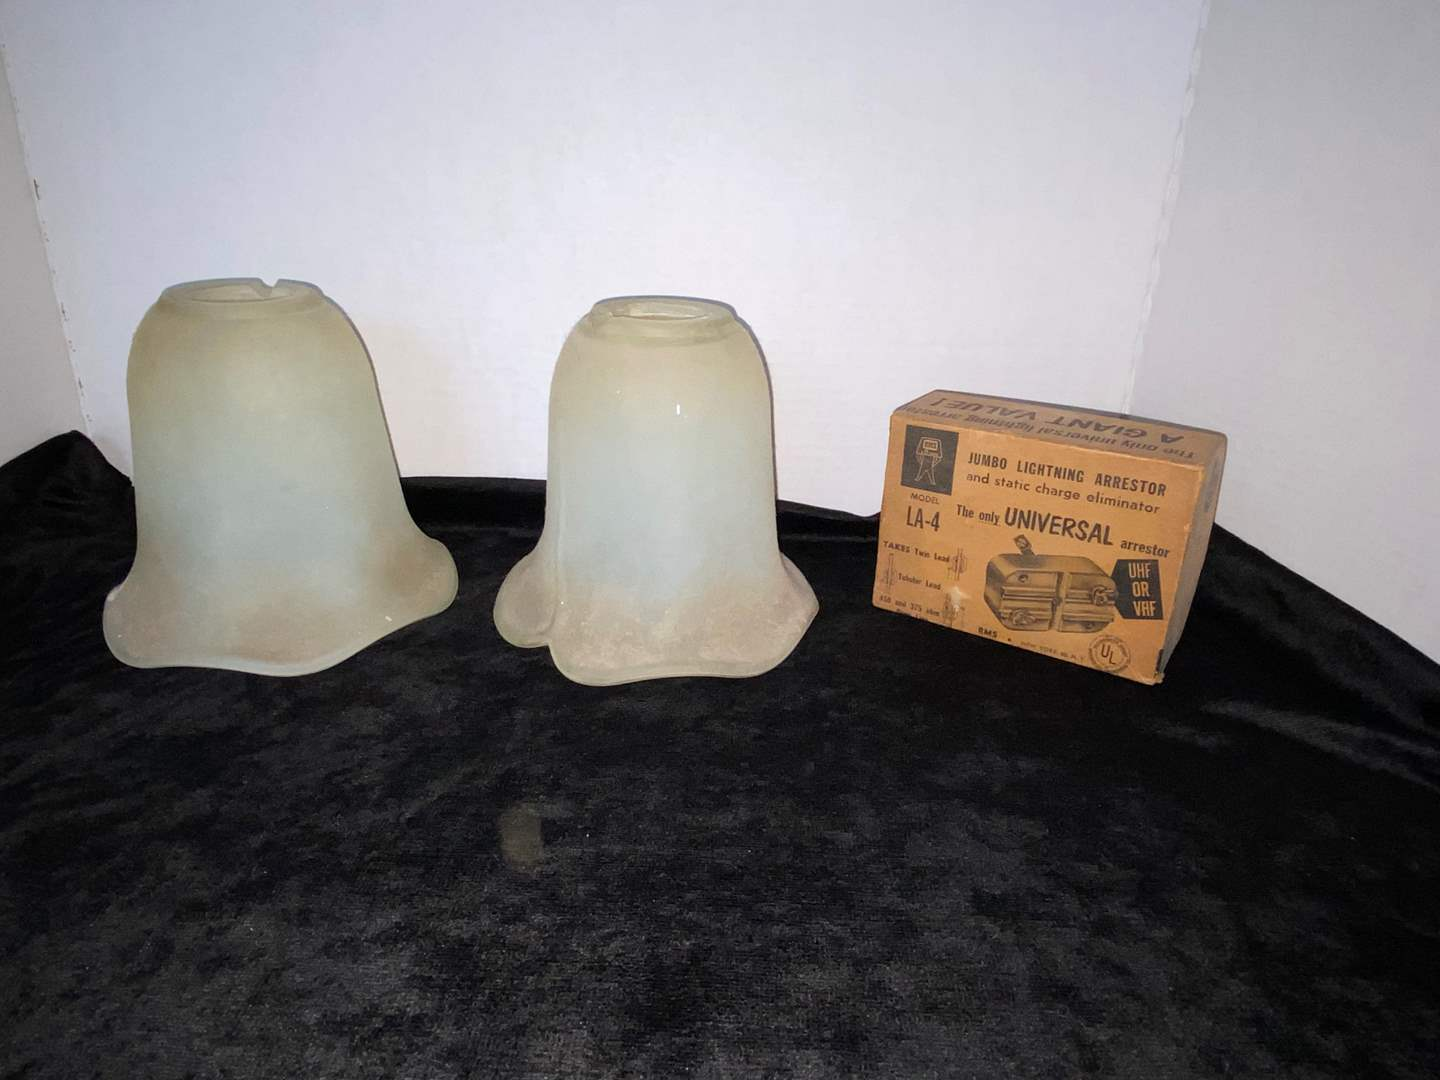 Lot # 87 (2) Frosted Glass Fixtures & Universal Arrestor